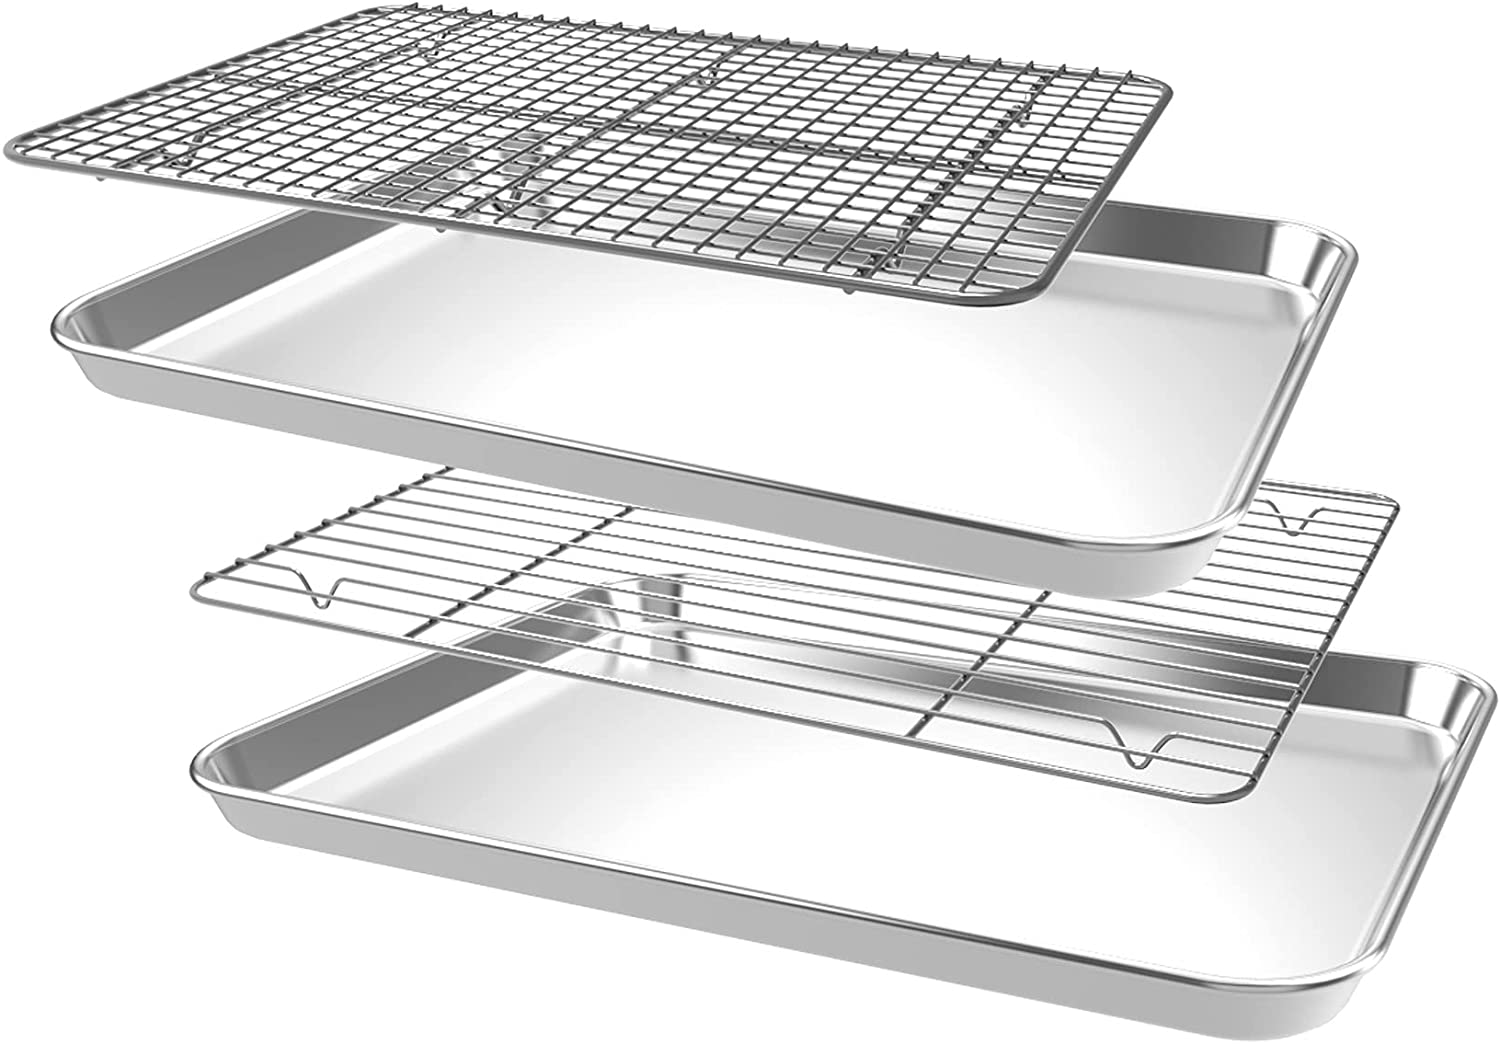 CEKEE Non-stick Baking Tray with Cooling Rack,4 PCS (2 Pans+2 Racks) Baking Sheet, Toaster Oven Baking Pans and Stainless Steel Pan for Kitchen Baking, Non Toxic & Heavy Duty & Easy Clean (10 inch)